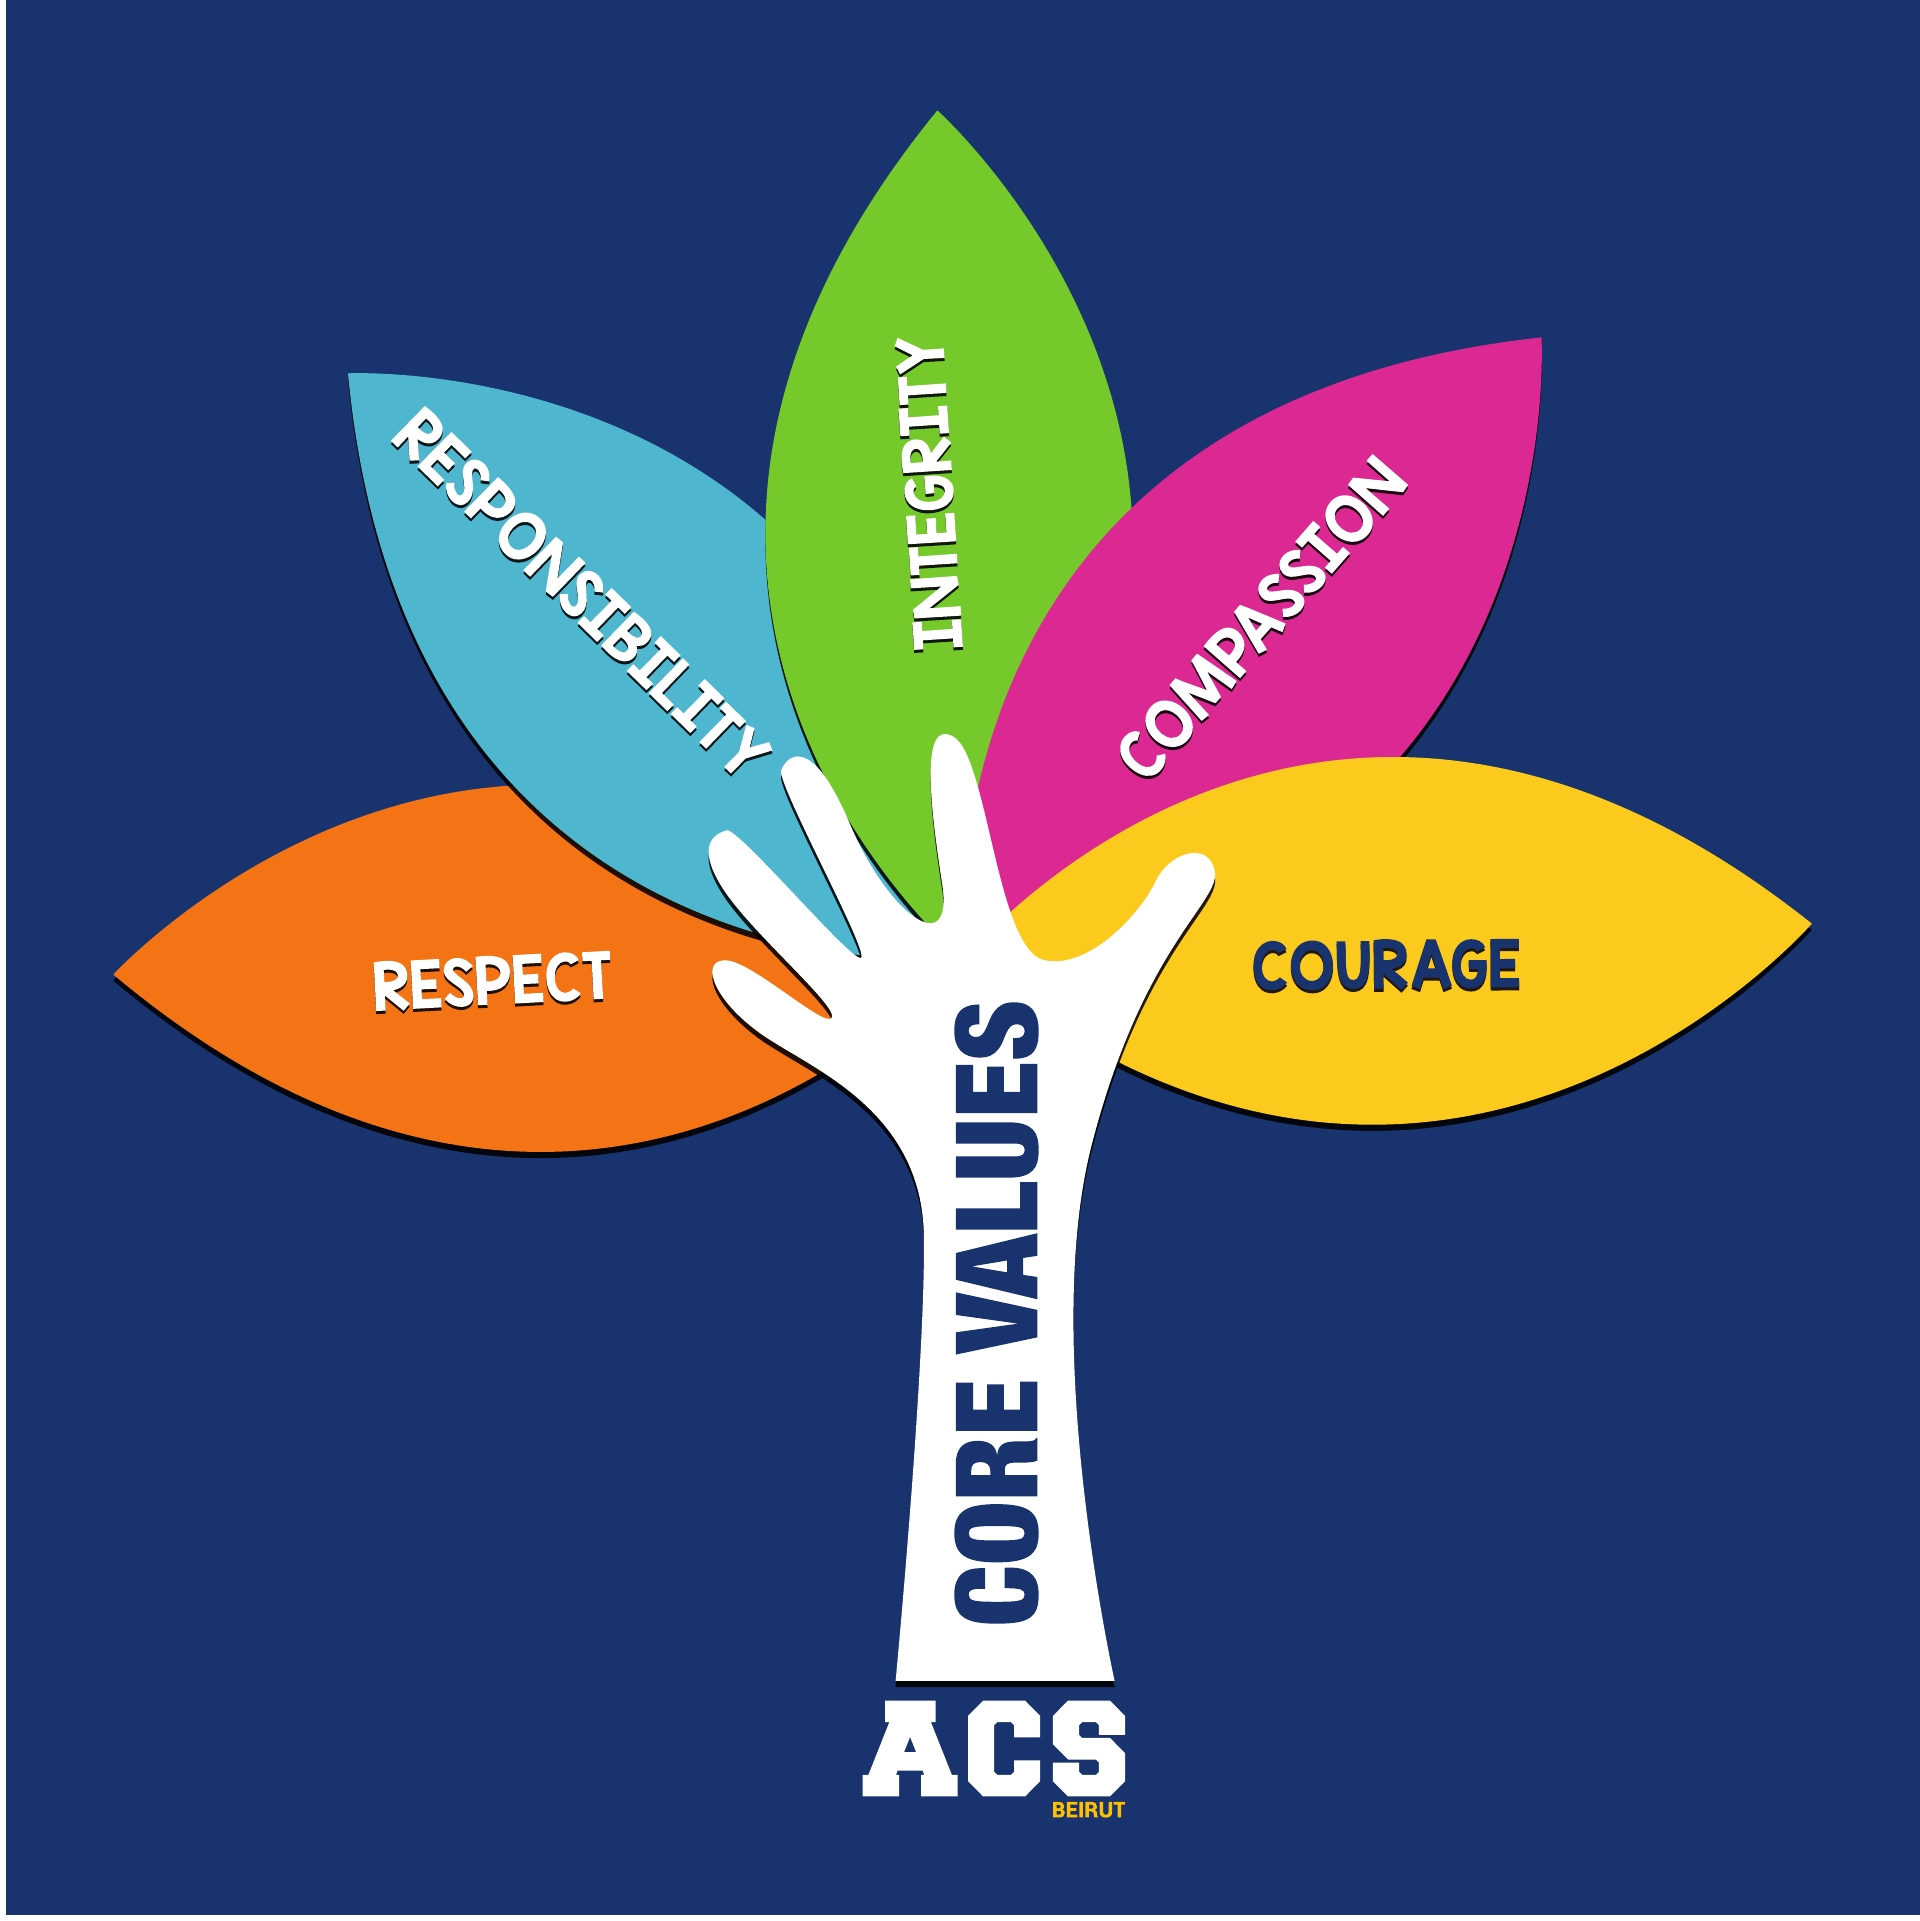 ACS Beirut Core Values